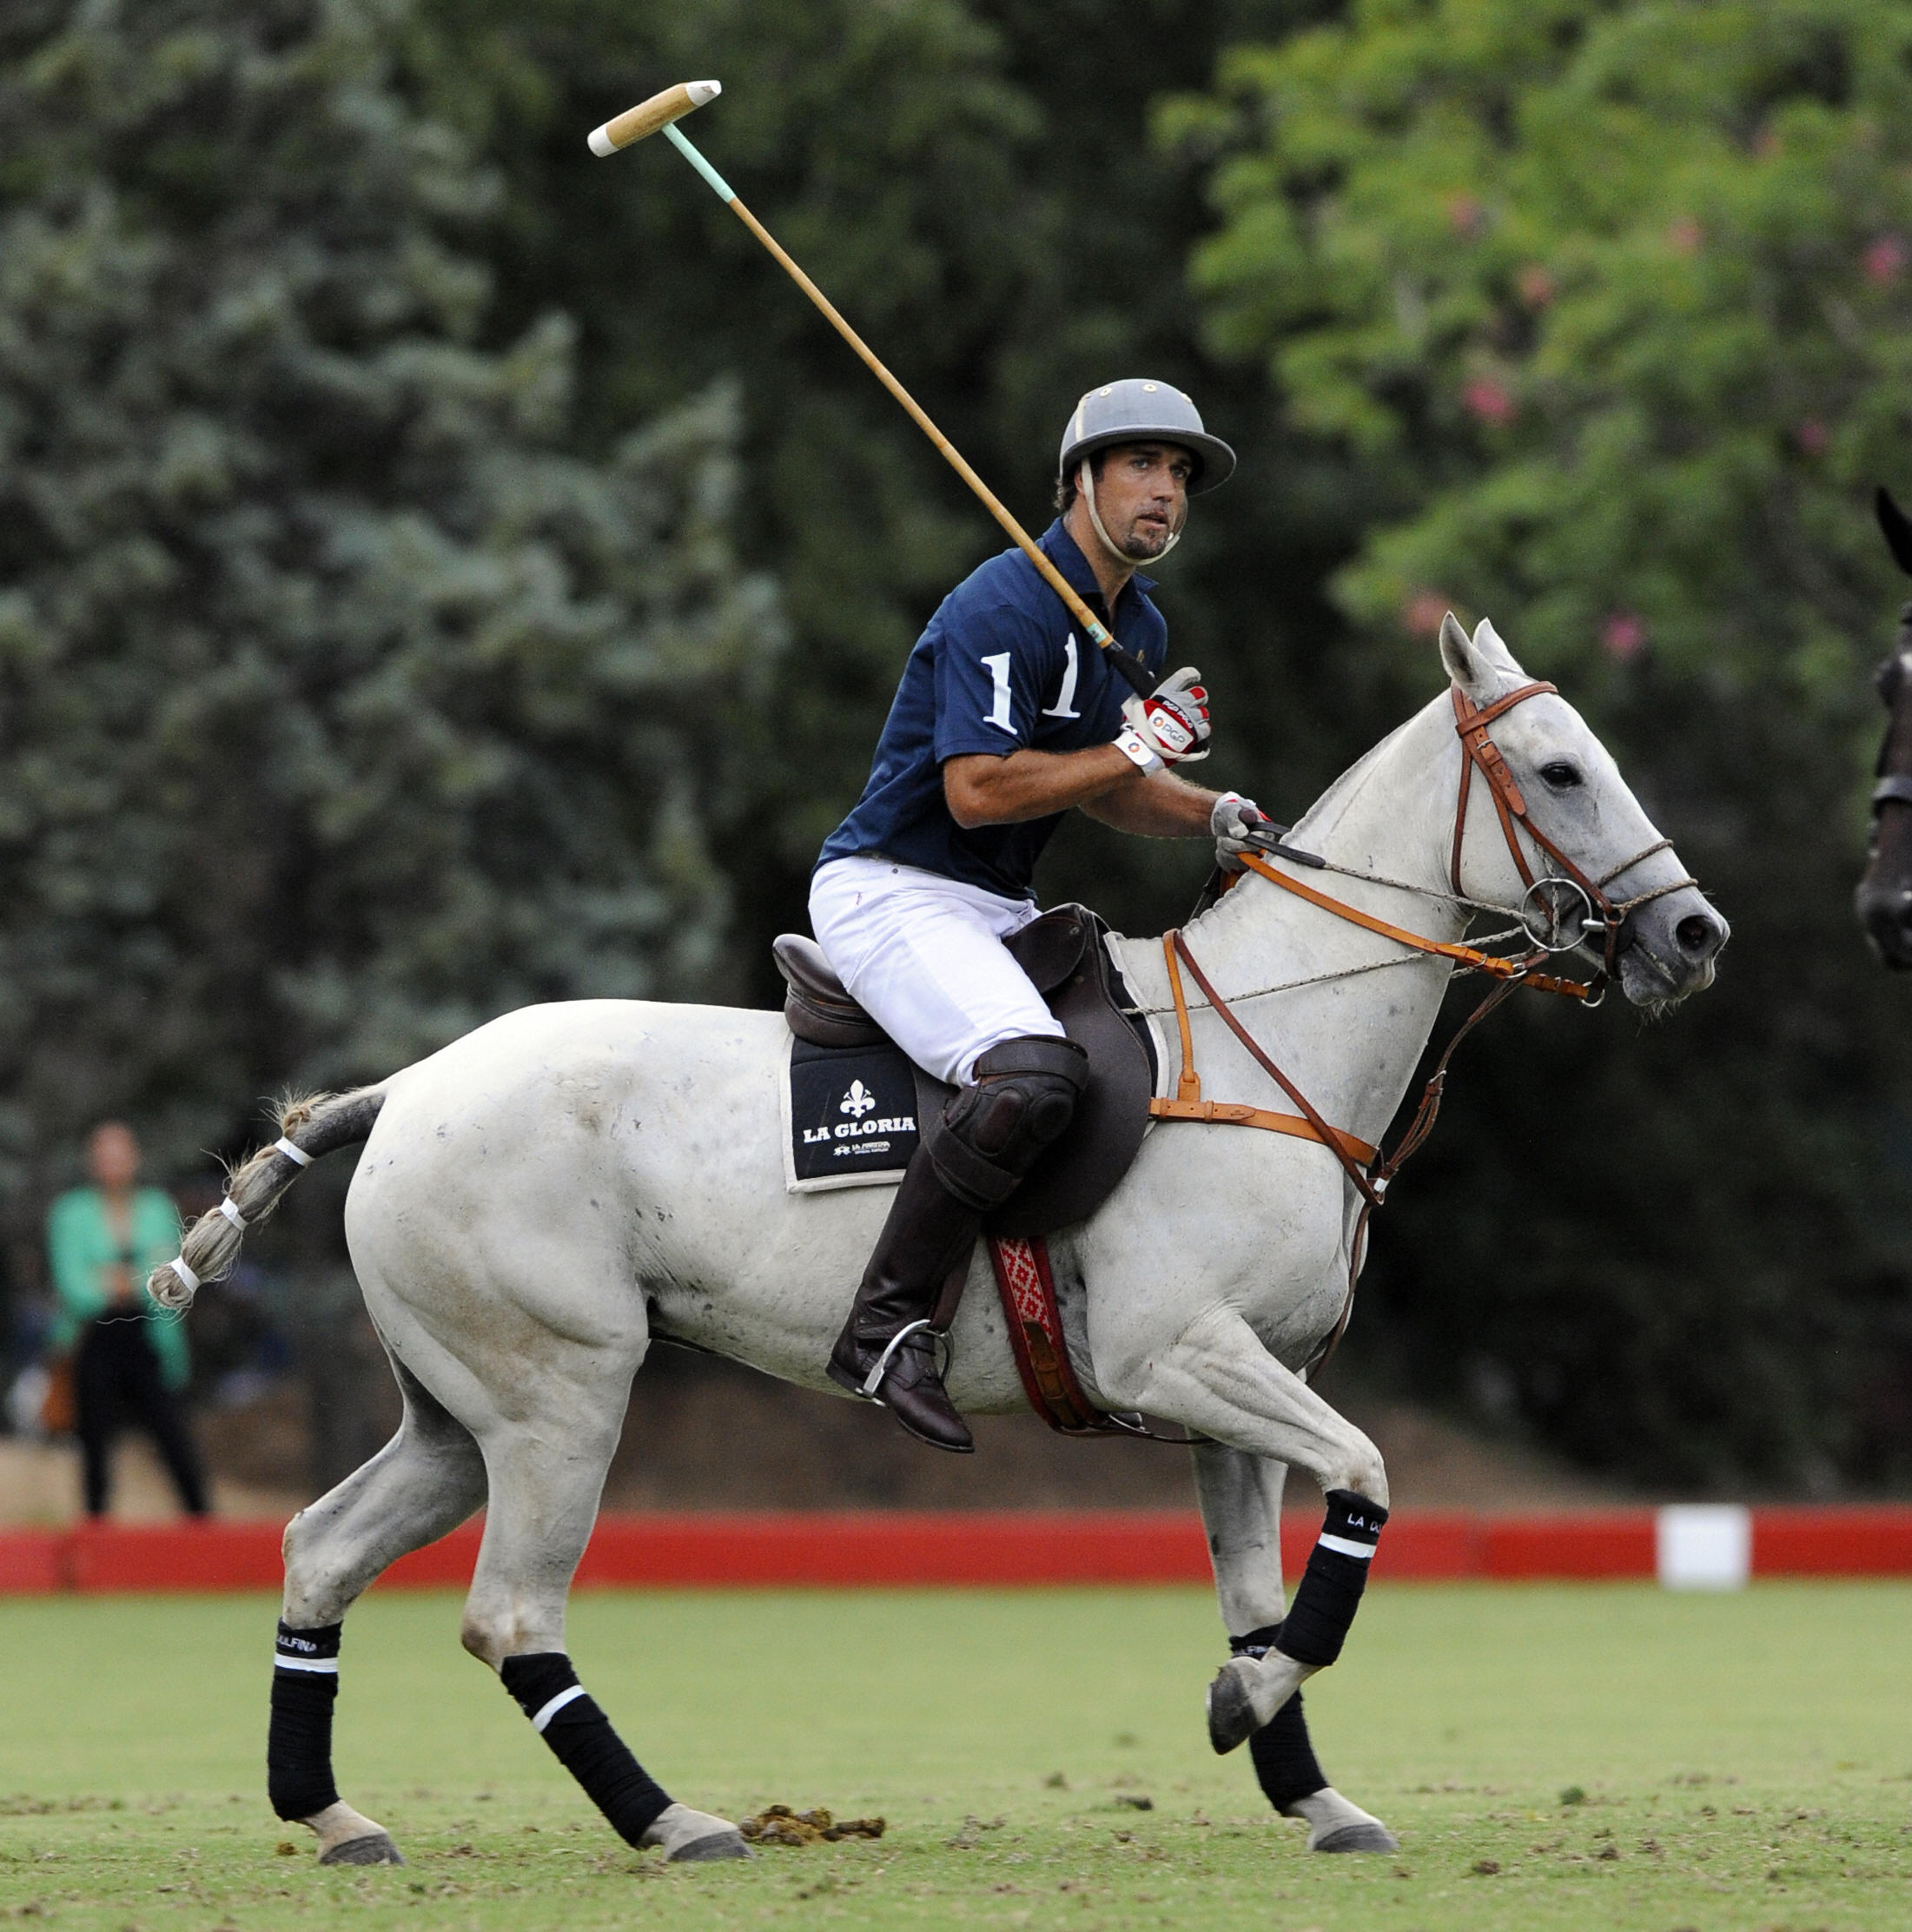 Former Argentine football striker Gabriel Batistuta takes part in a polo match between Loro Piana polo team and Chapelco, in Buenos Aires, on March 3, 2009. Batistuta participates in the IV Argentina Polo Tour tournament for Loro Piana team, led by Adolfo Cambiaso, considered best polo player in the world. AFP PHOTO/DANIEL GARCIA (Photo credit should read DANIEL GARCIA/AFP/Getty Images)